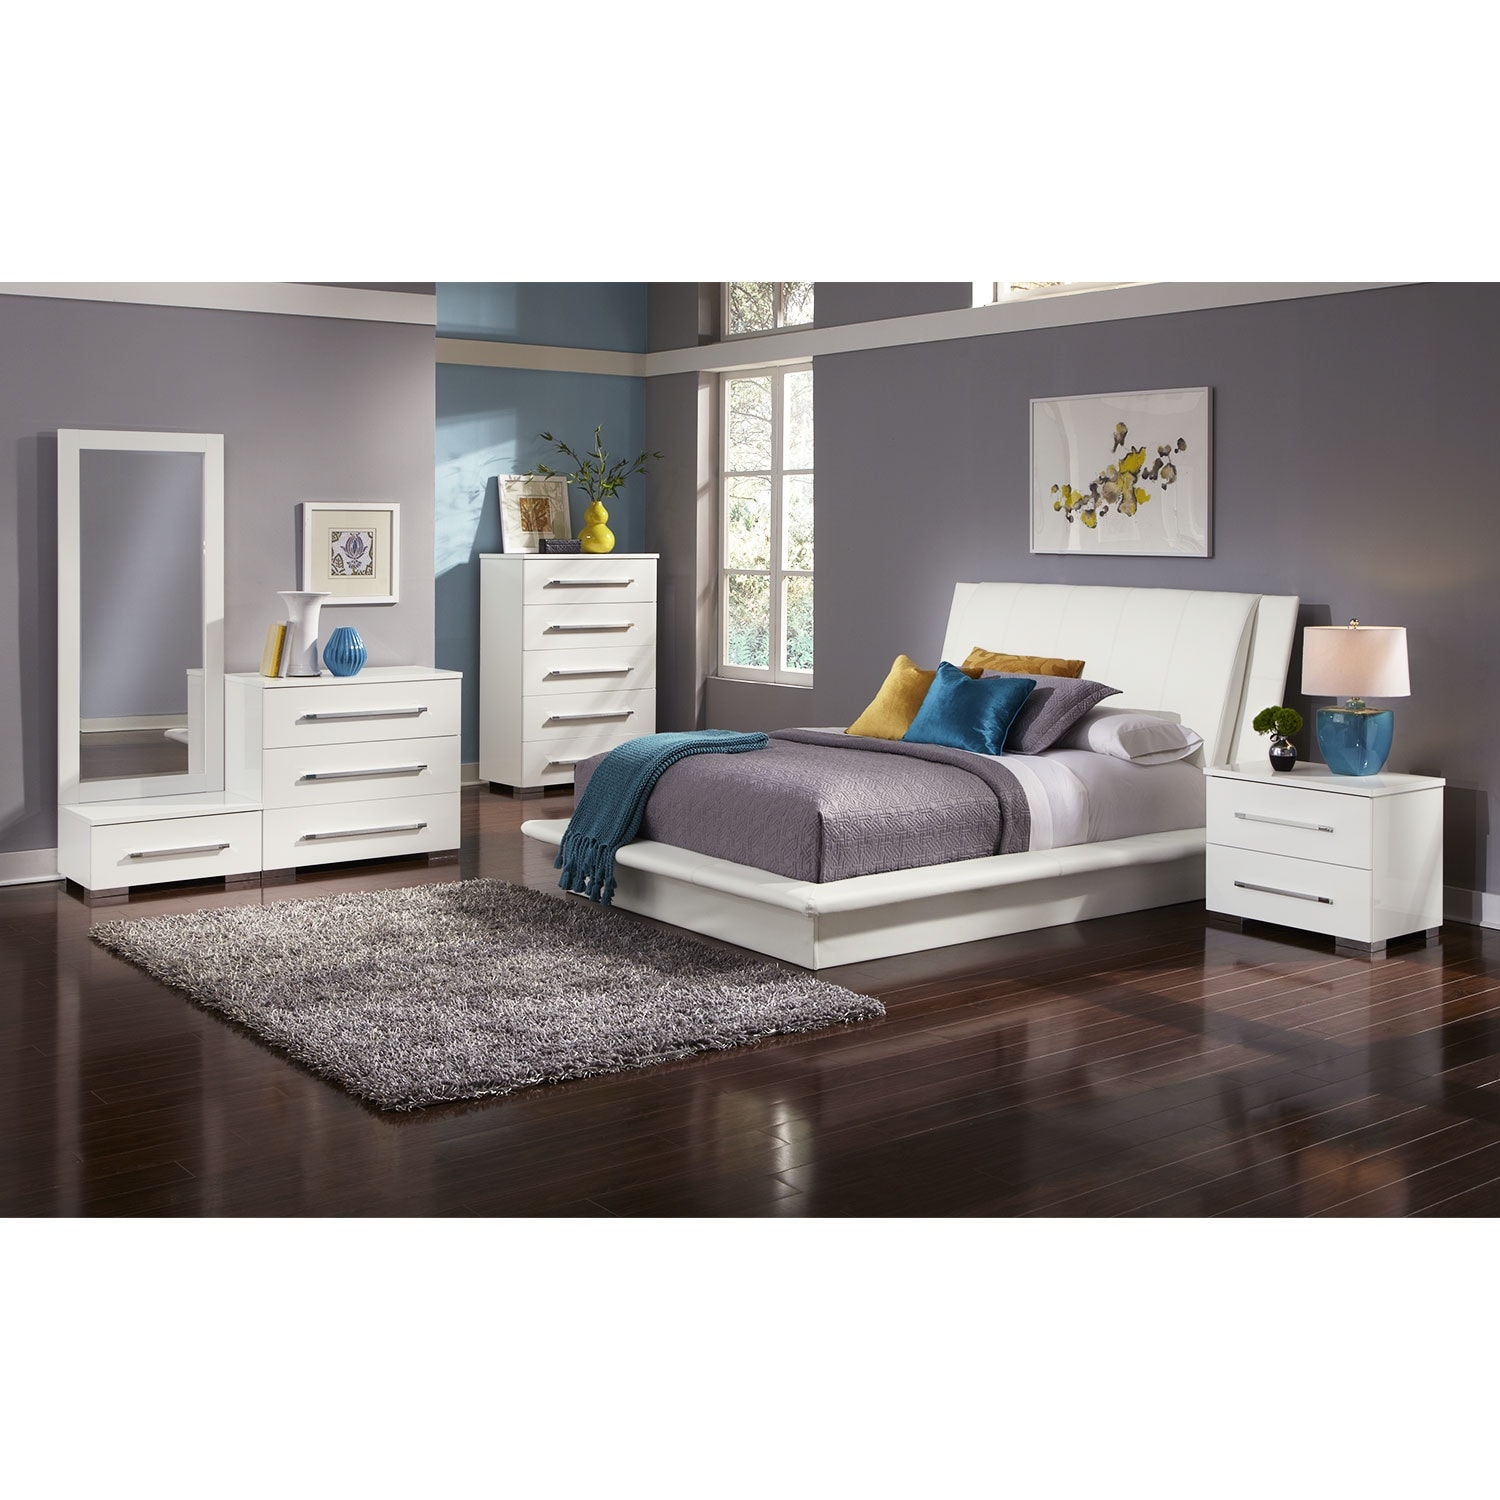 Dimora 7 Piece King Upholstered Bedroom Set White